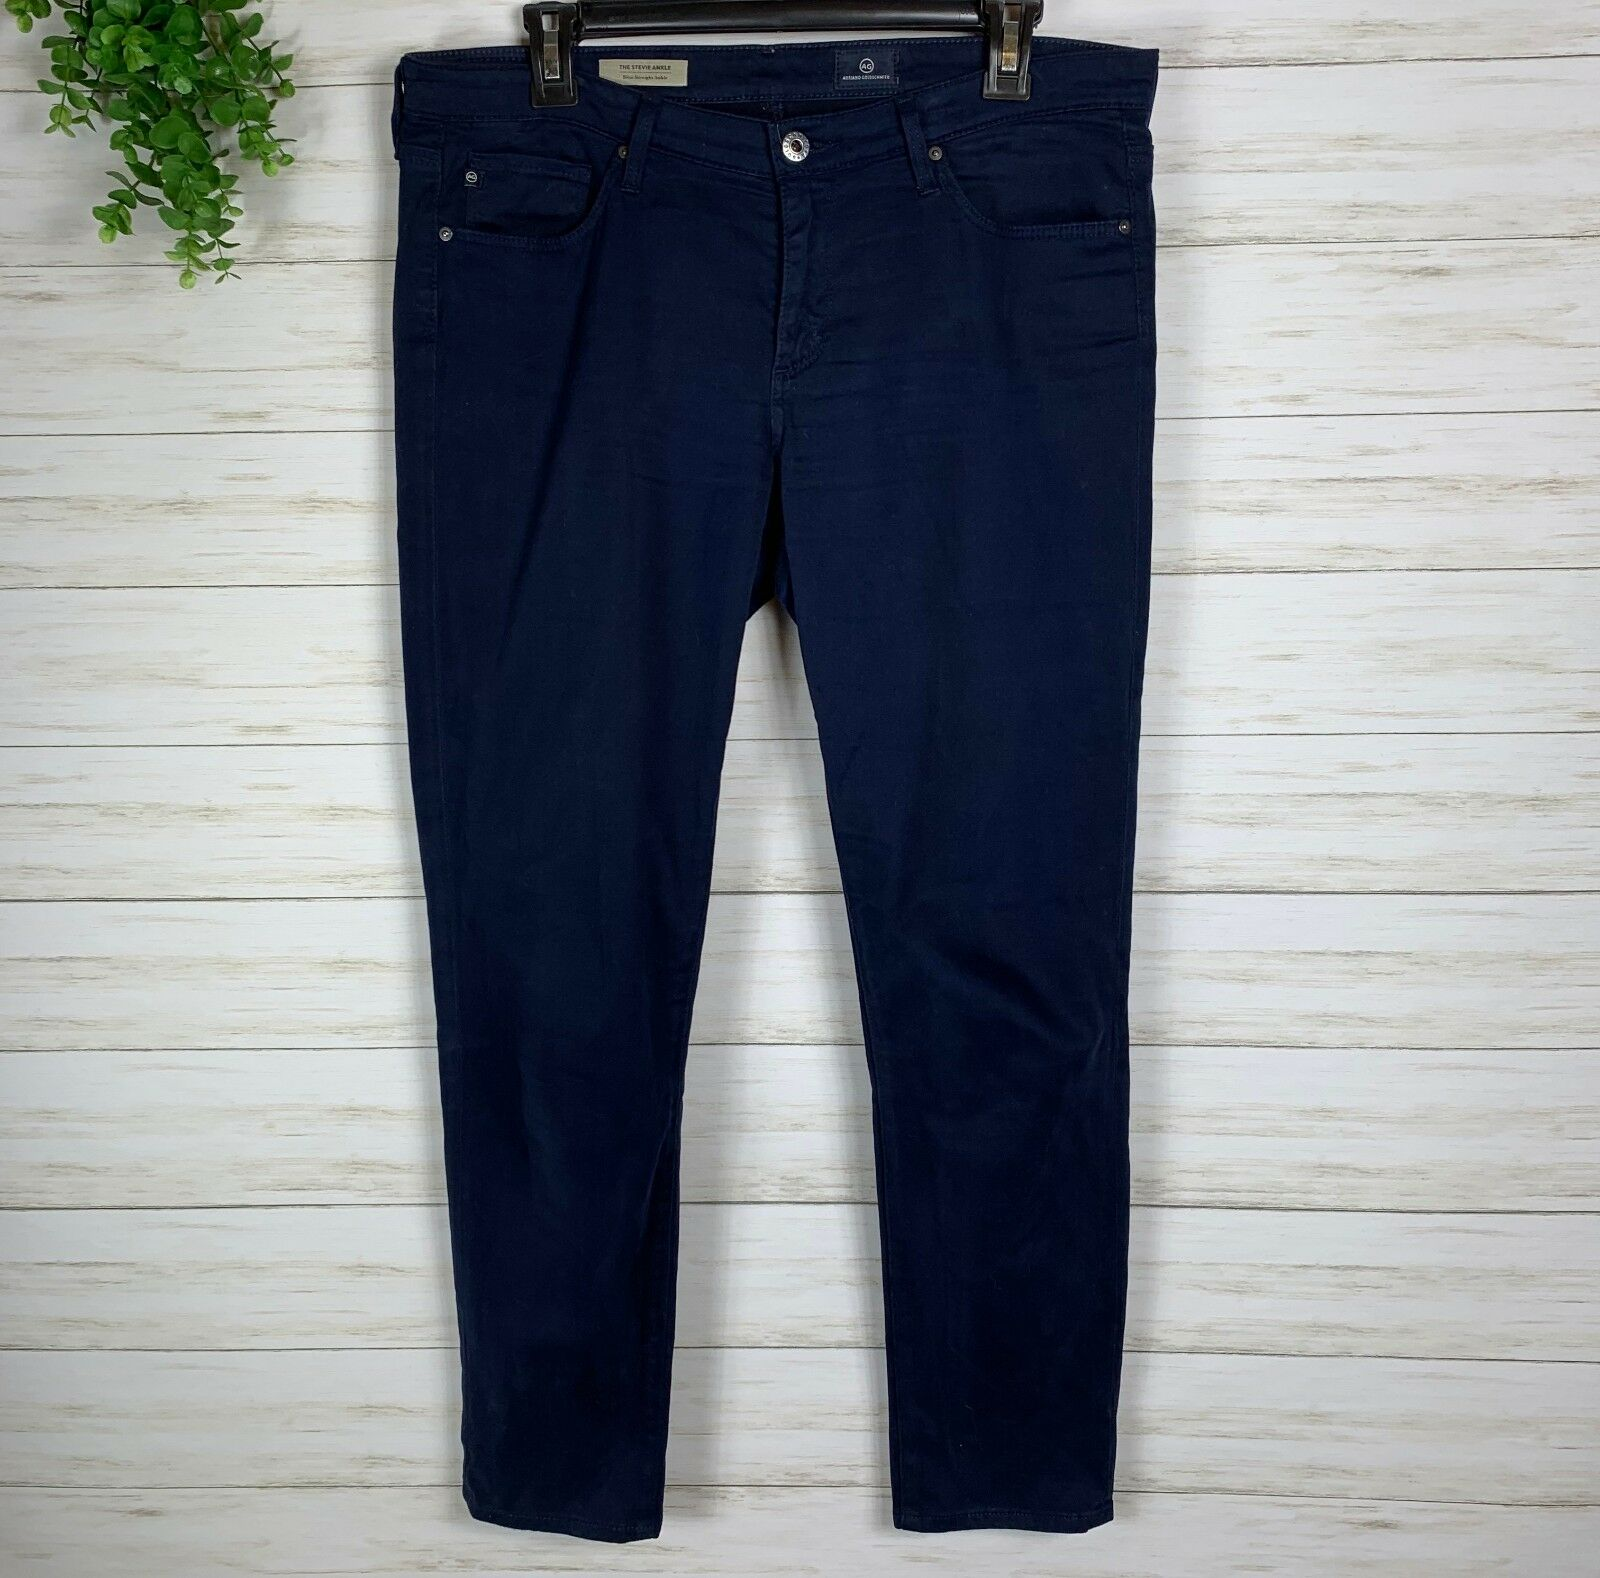 Women's Adriano goldschmied Slim Straight Ankle Pants sz 30 bluee felt